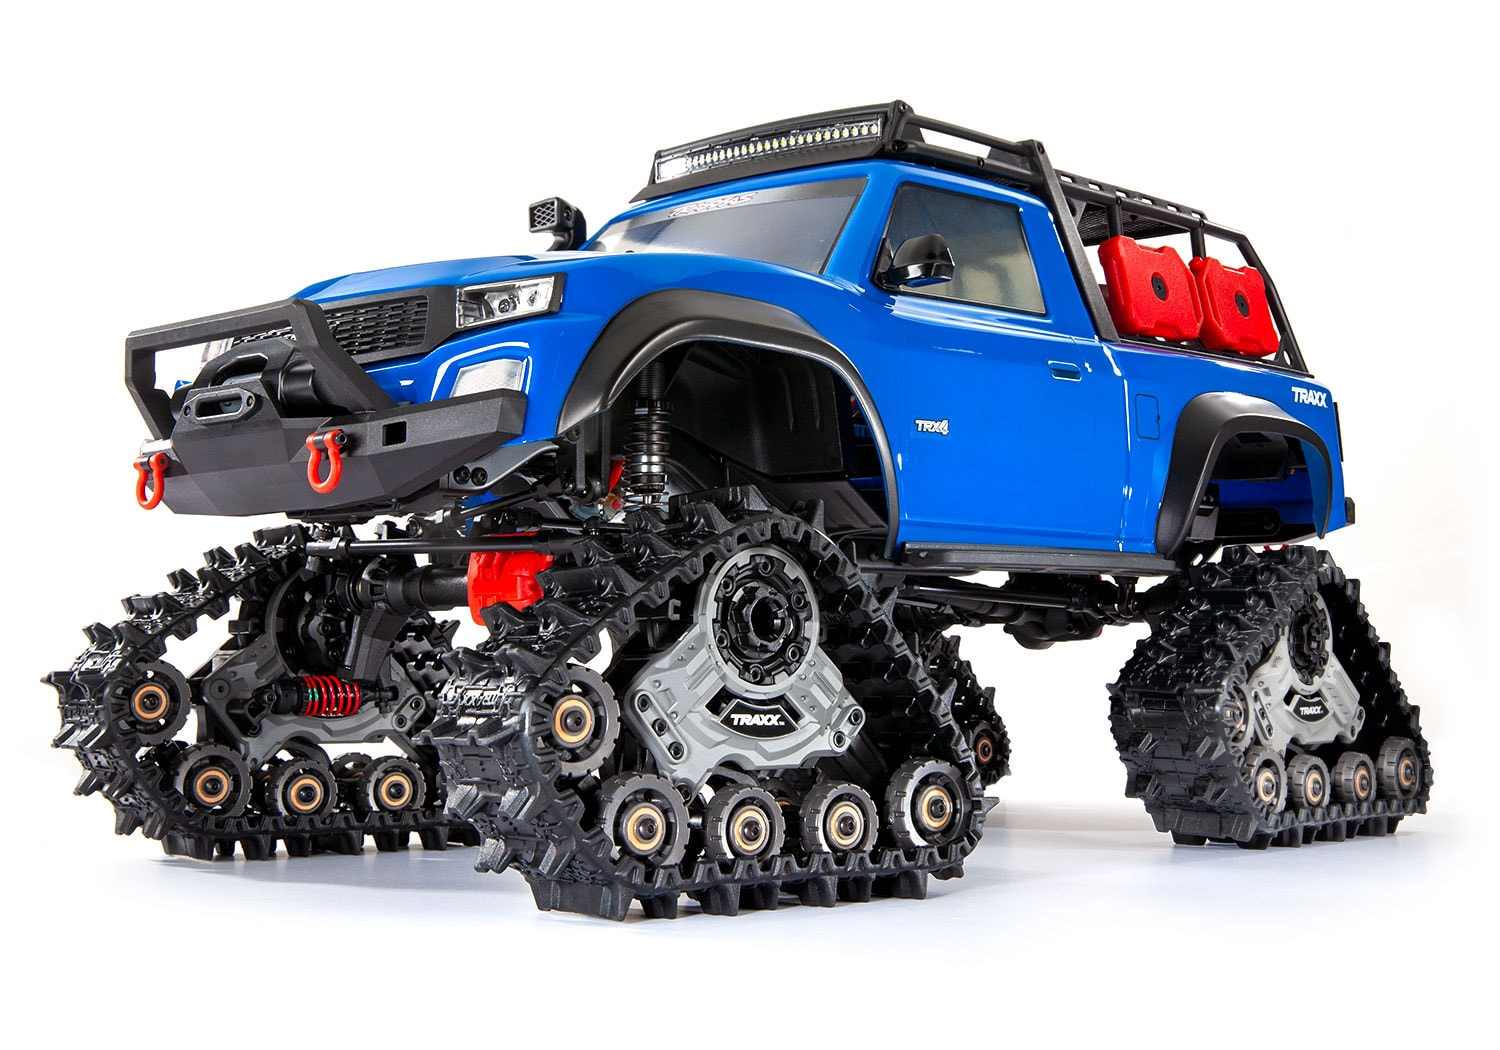 Venture into the Deep Stuff with Deep-Terrain Treads for the Traxxas TRX-4 Traxx